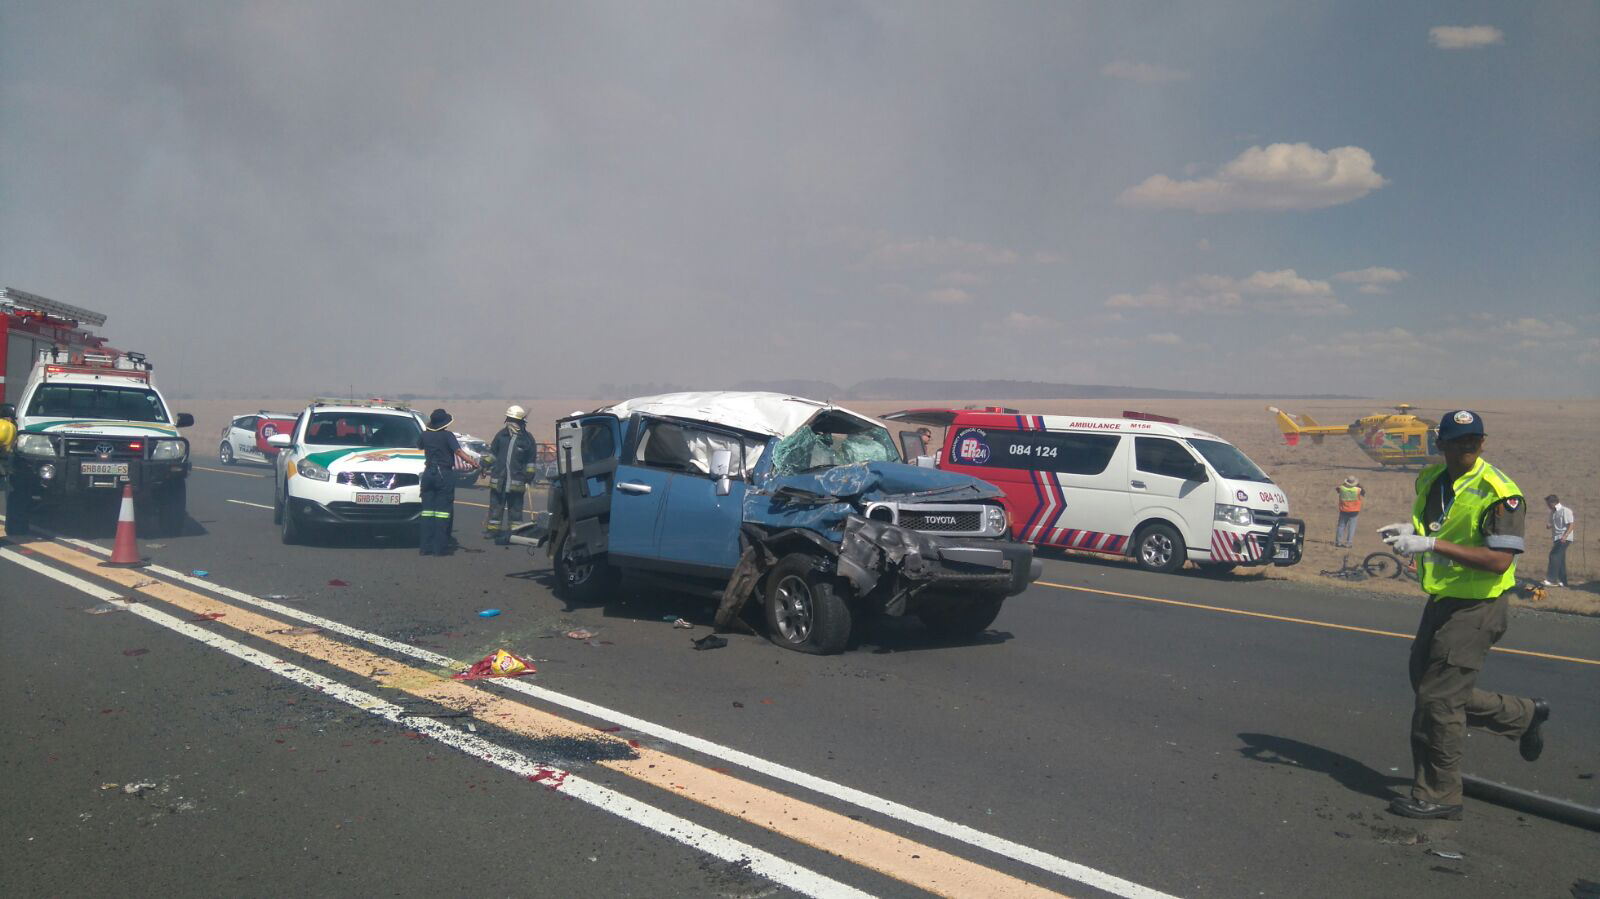 12 injured in multiple vehicle collision in veld fire smoke near ...